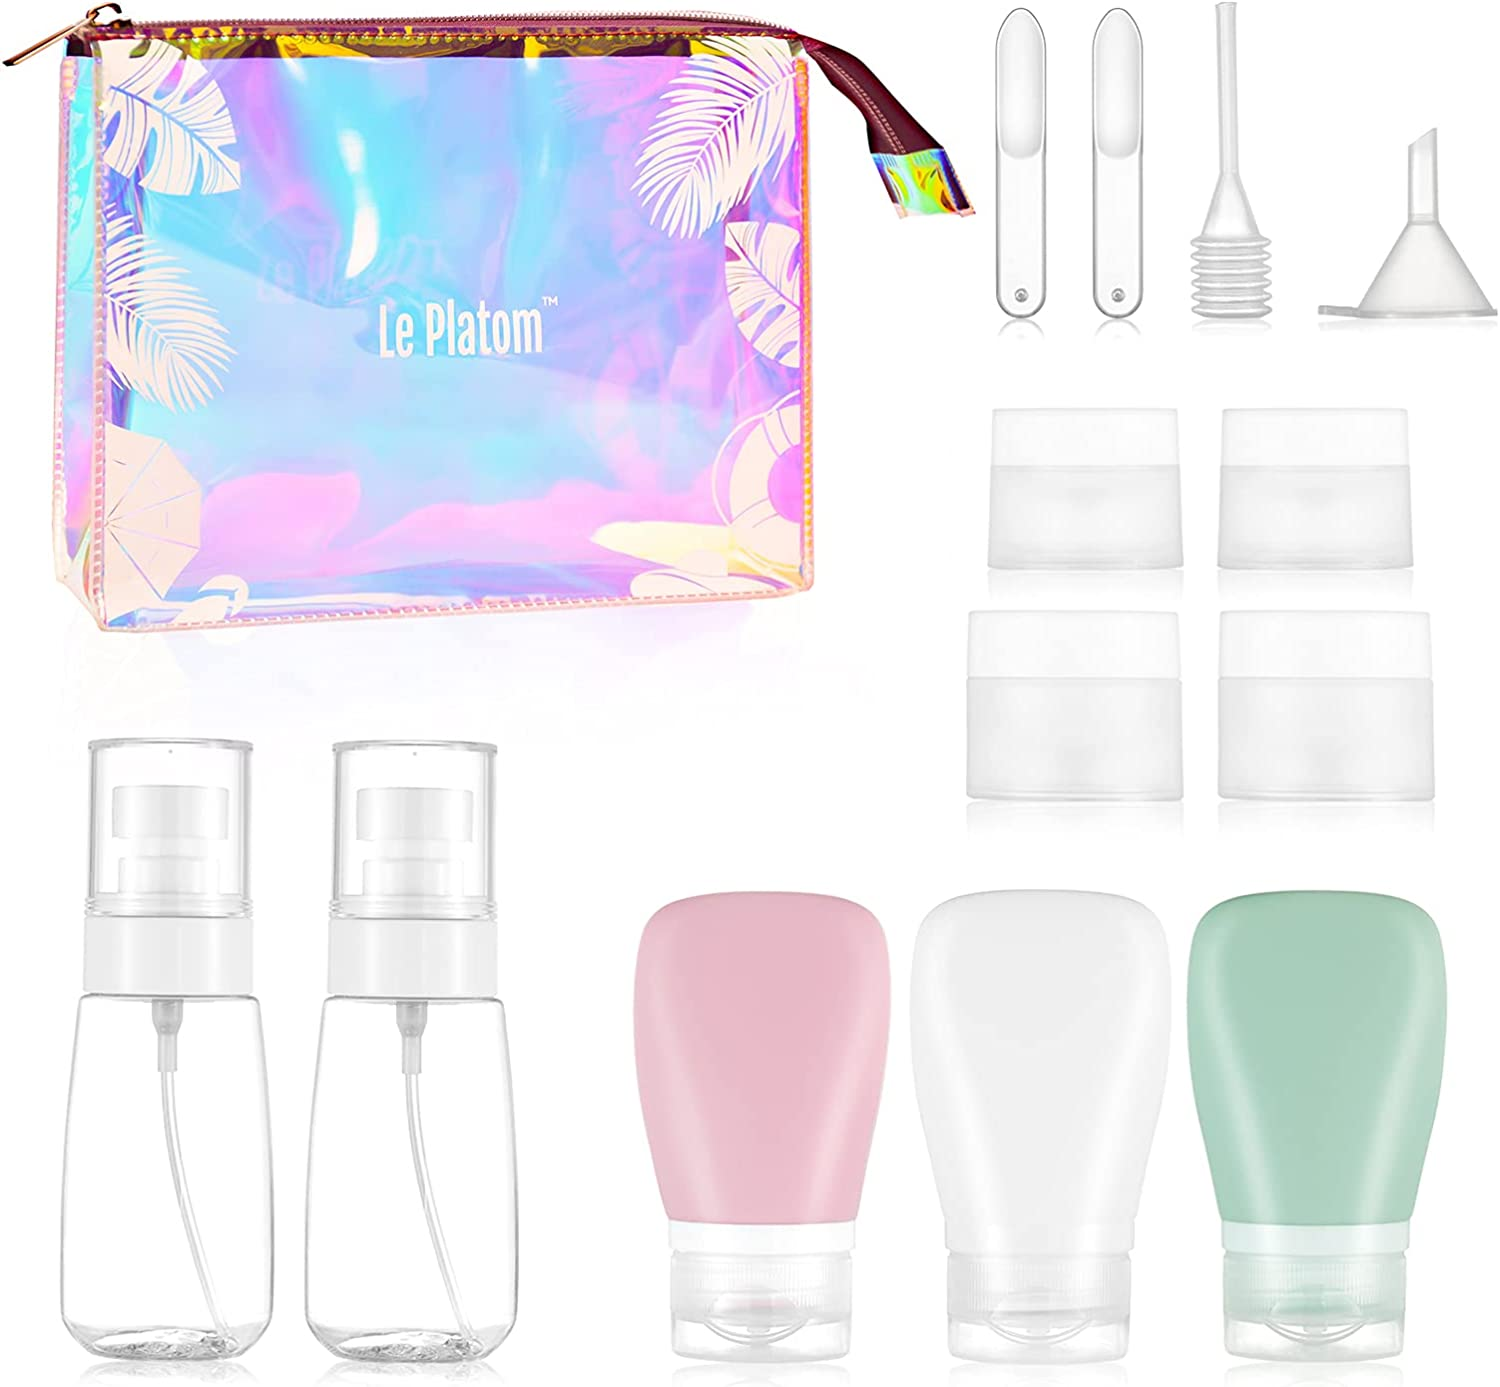 LePlatom Silicone Travel Bottles set 14pcs, Spray Bottles, Silicone Container Bottle, Leak-Proof Travel Cosmetic Container Holographic Bag, 311 TSA Approved Travel Container For Toiletries, With Labels